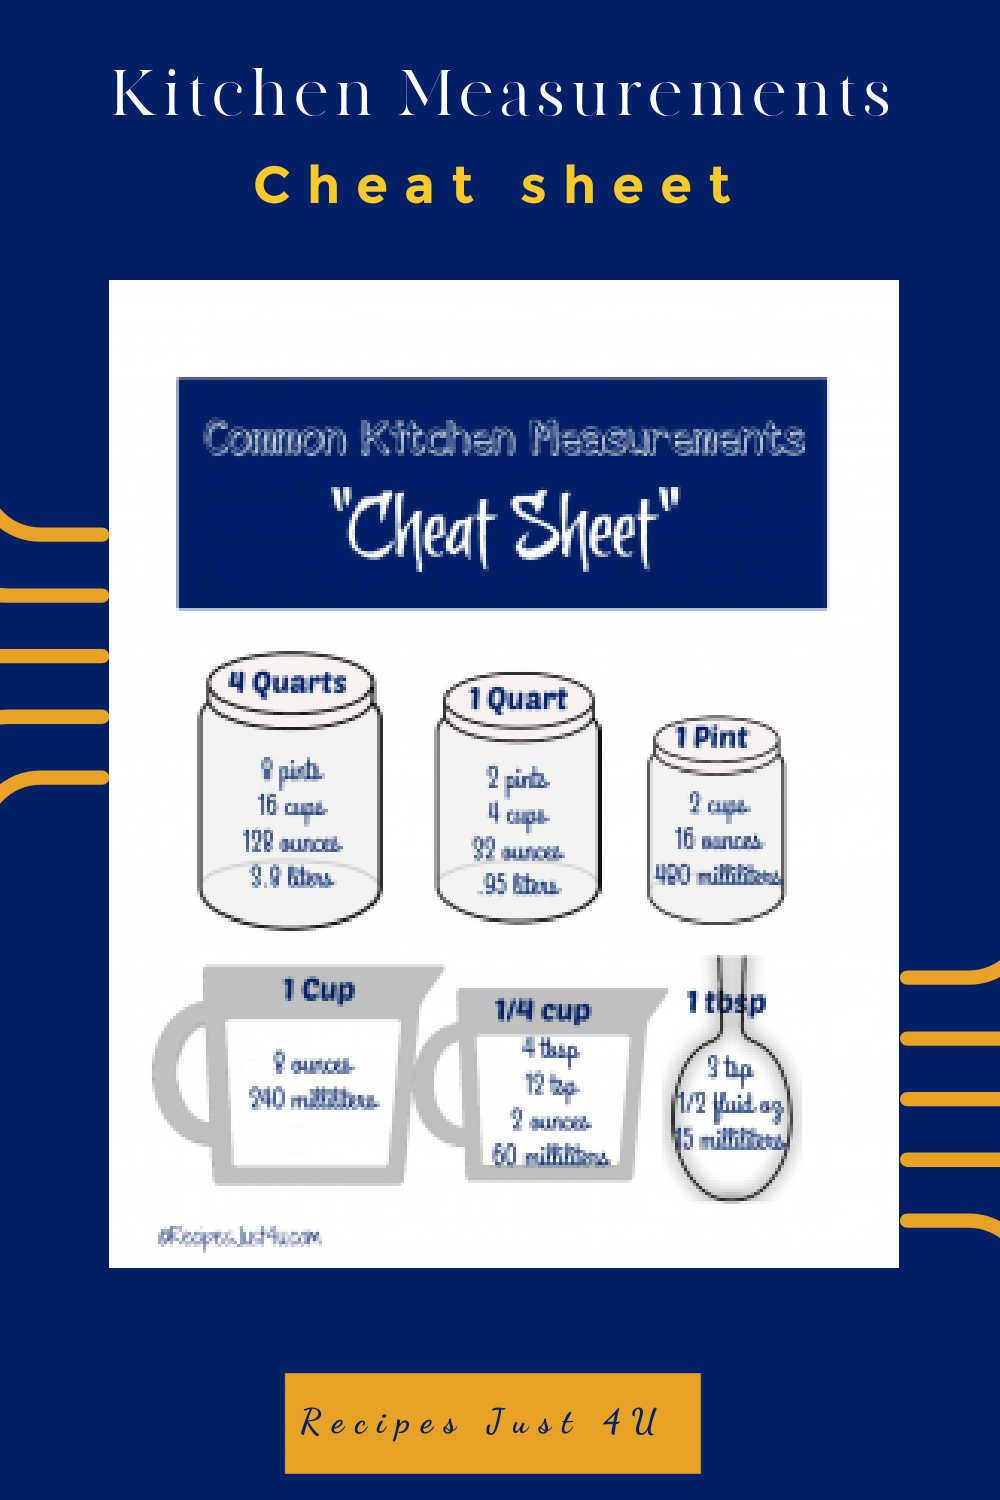 Jars and cups with recipe conversions and text reading Kitchen measurements cheat sheet.